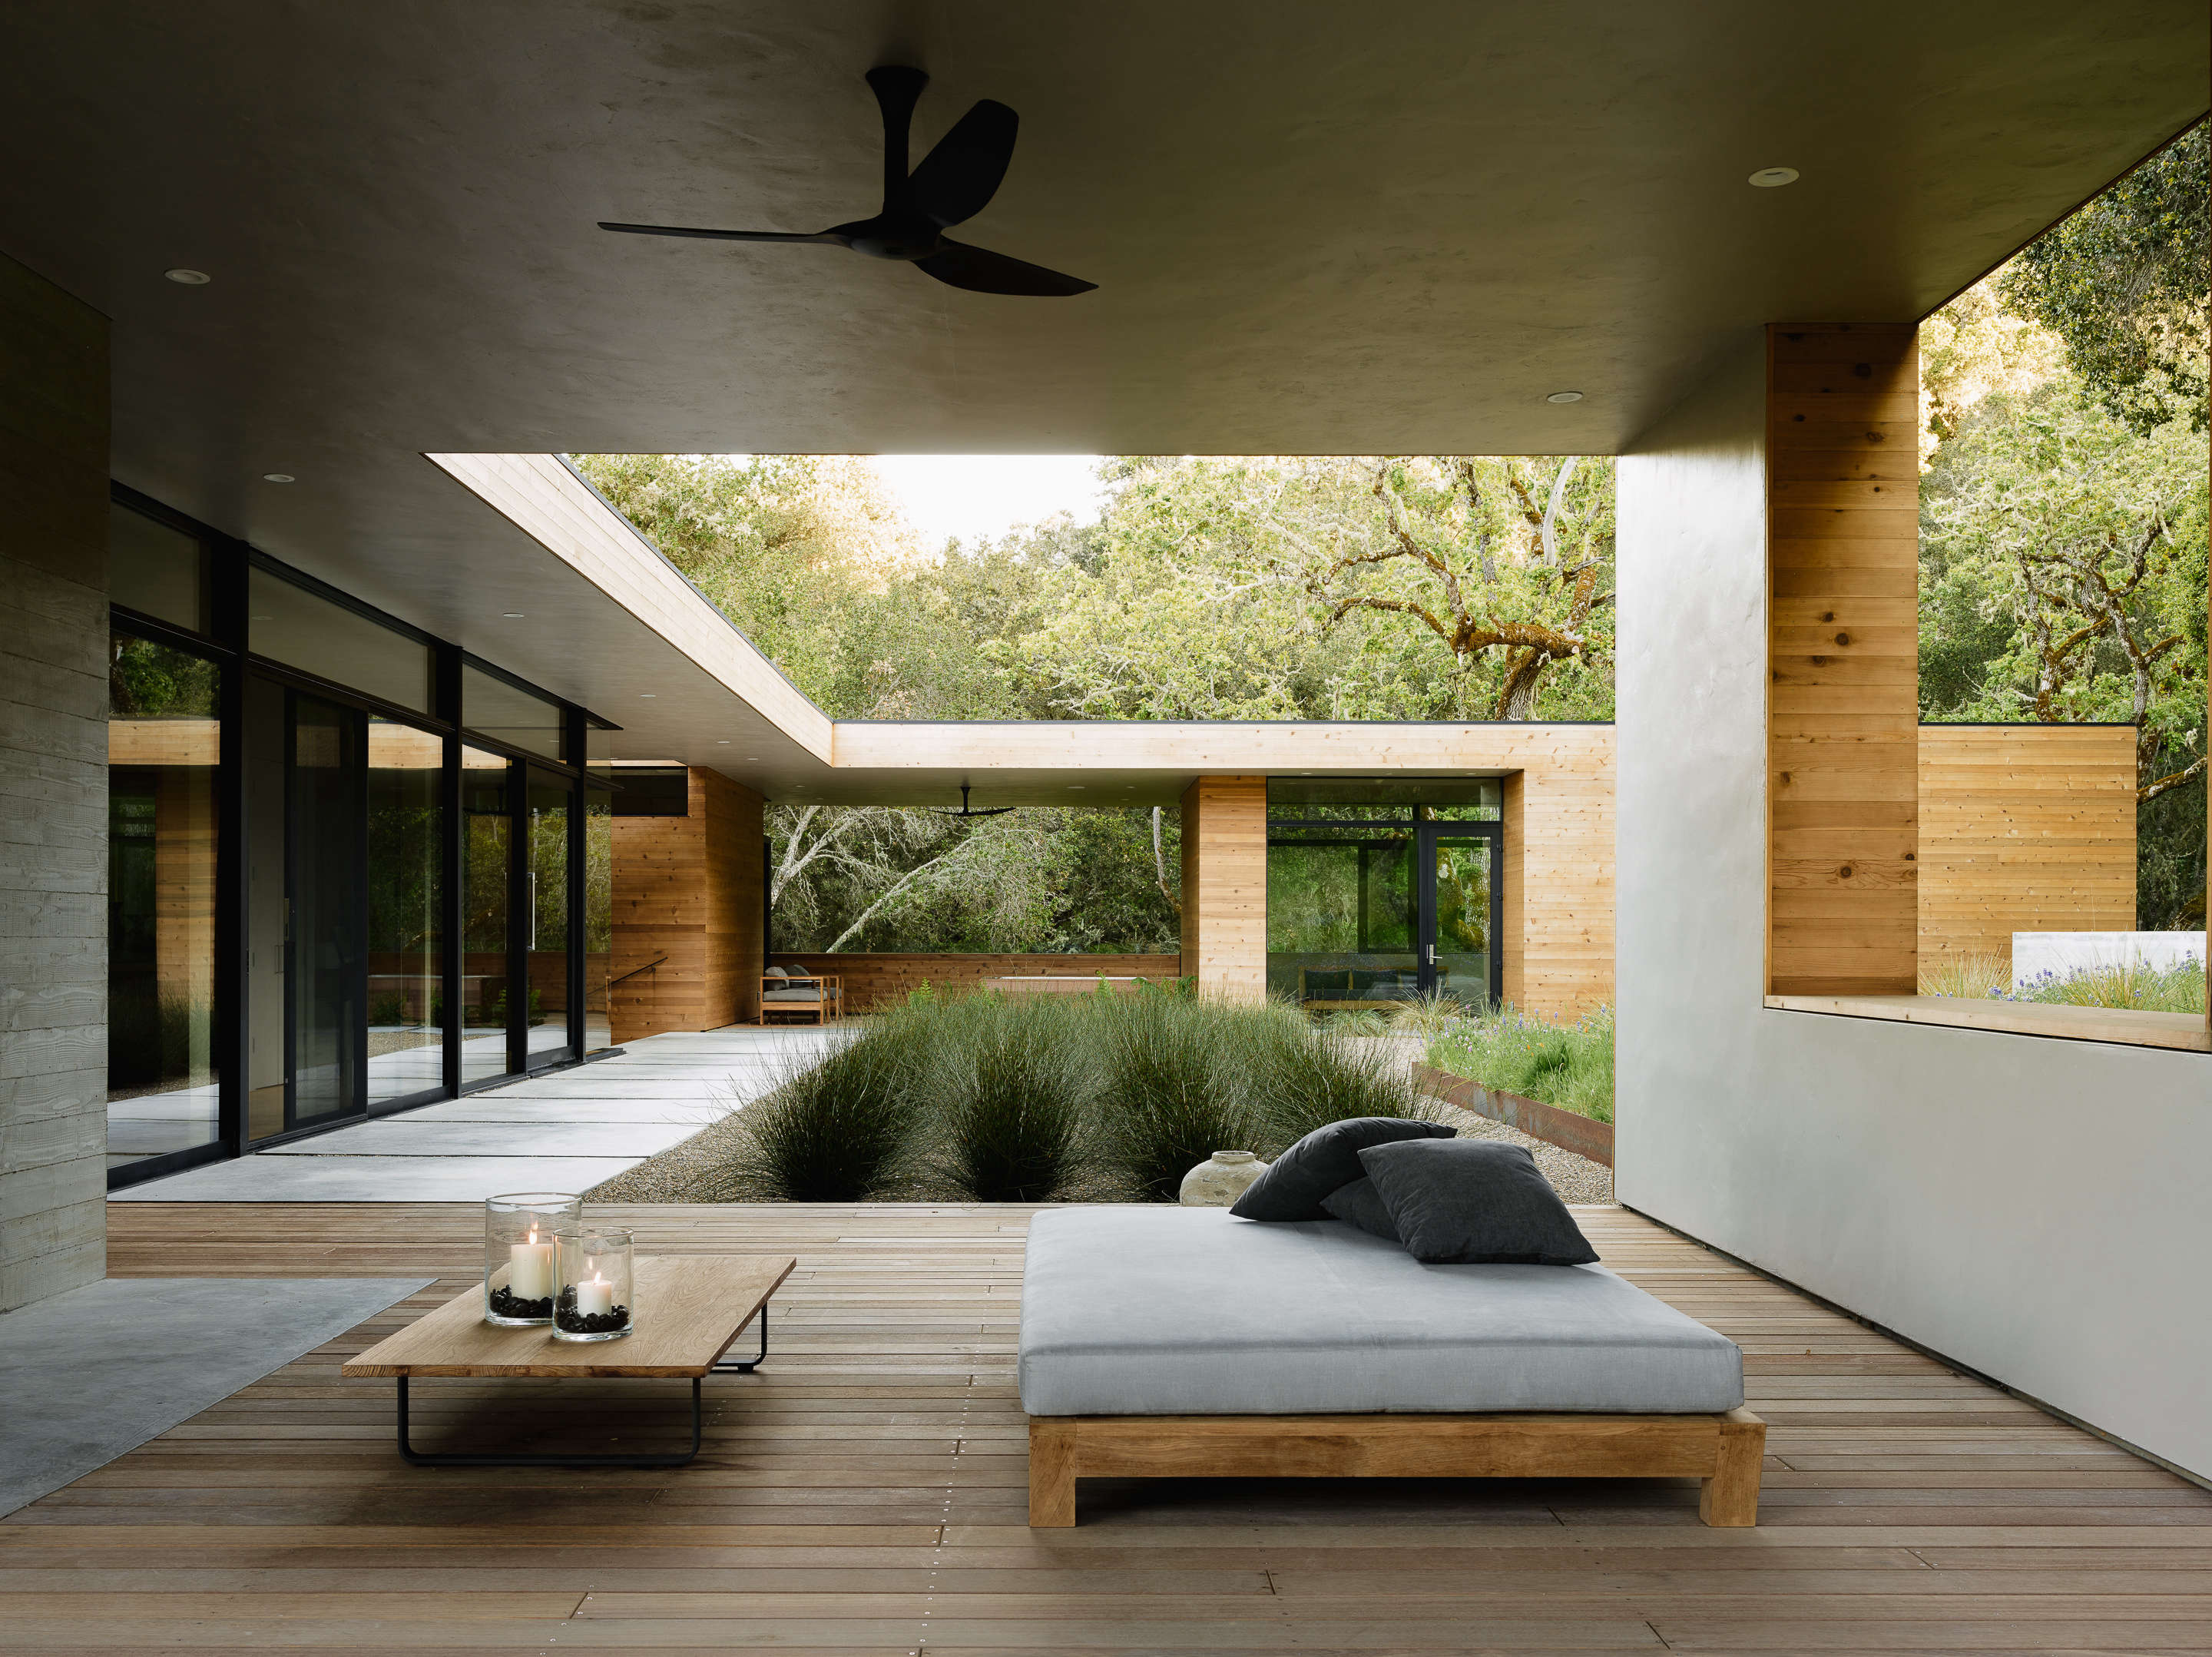 Carmel Valley Outdoor Room Daybed Ceiling Fan Piechota